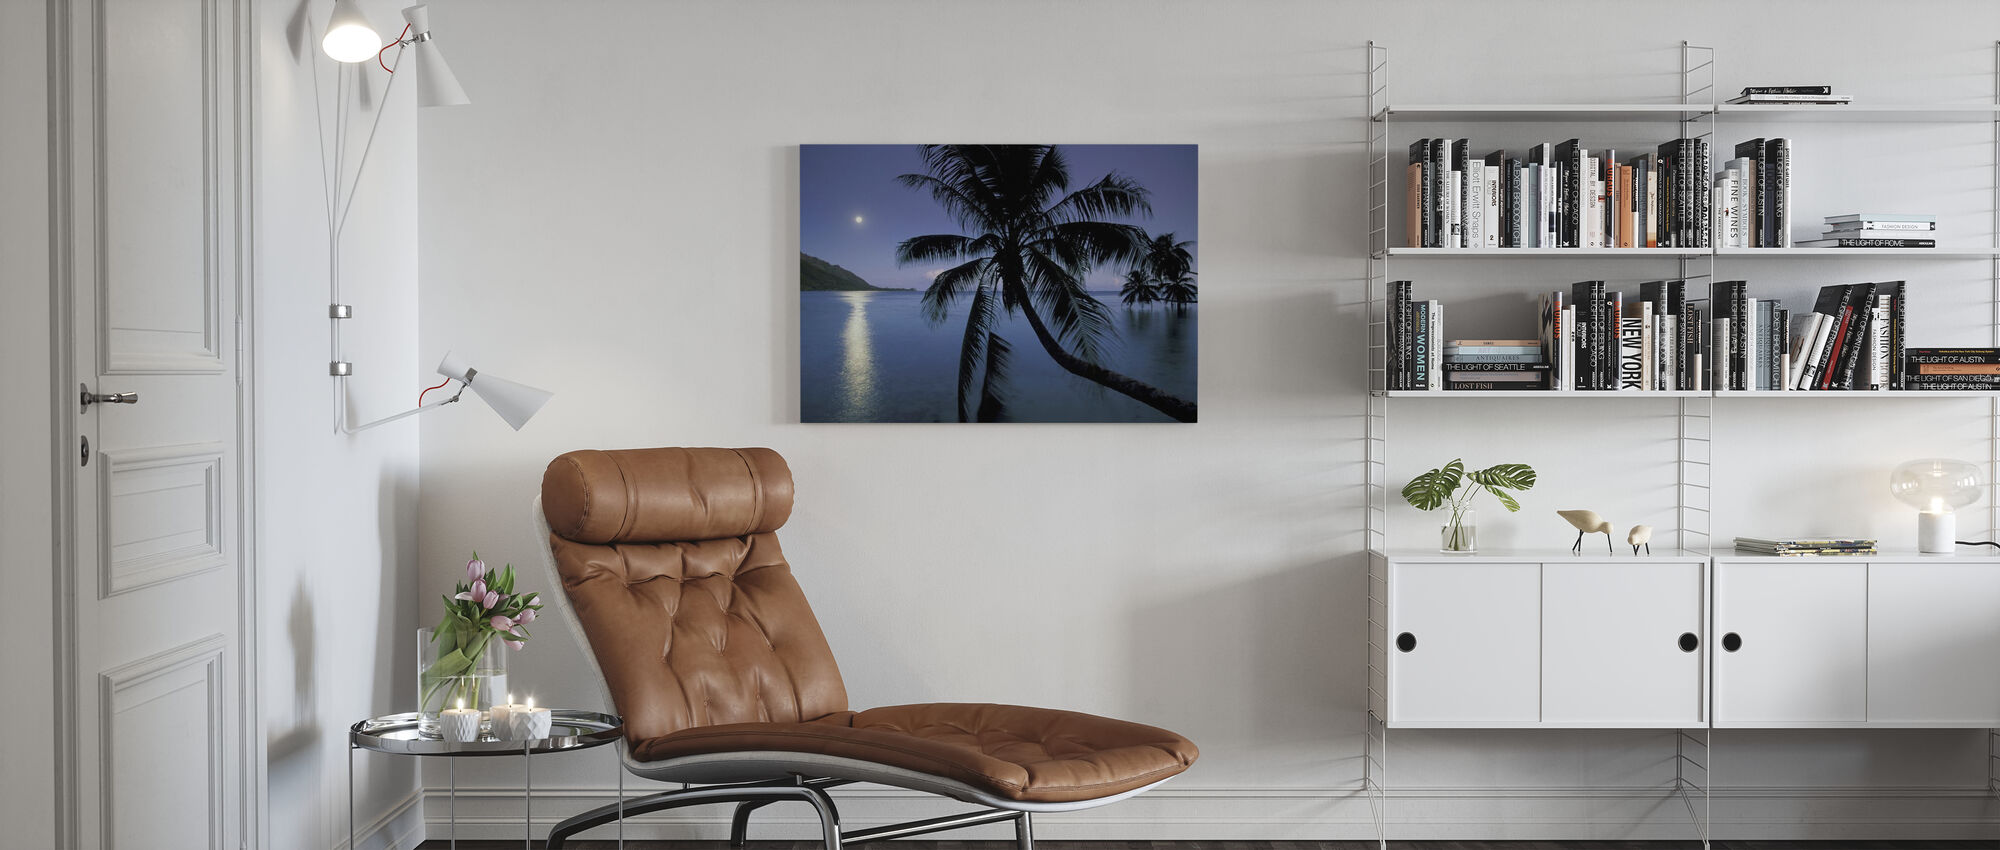 Droomeiland - Canvas print - Woonkamer